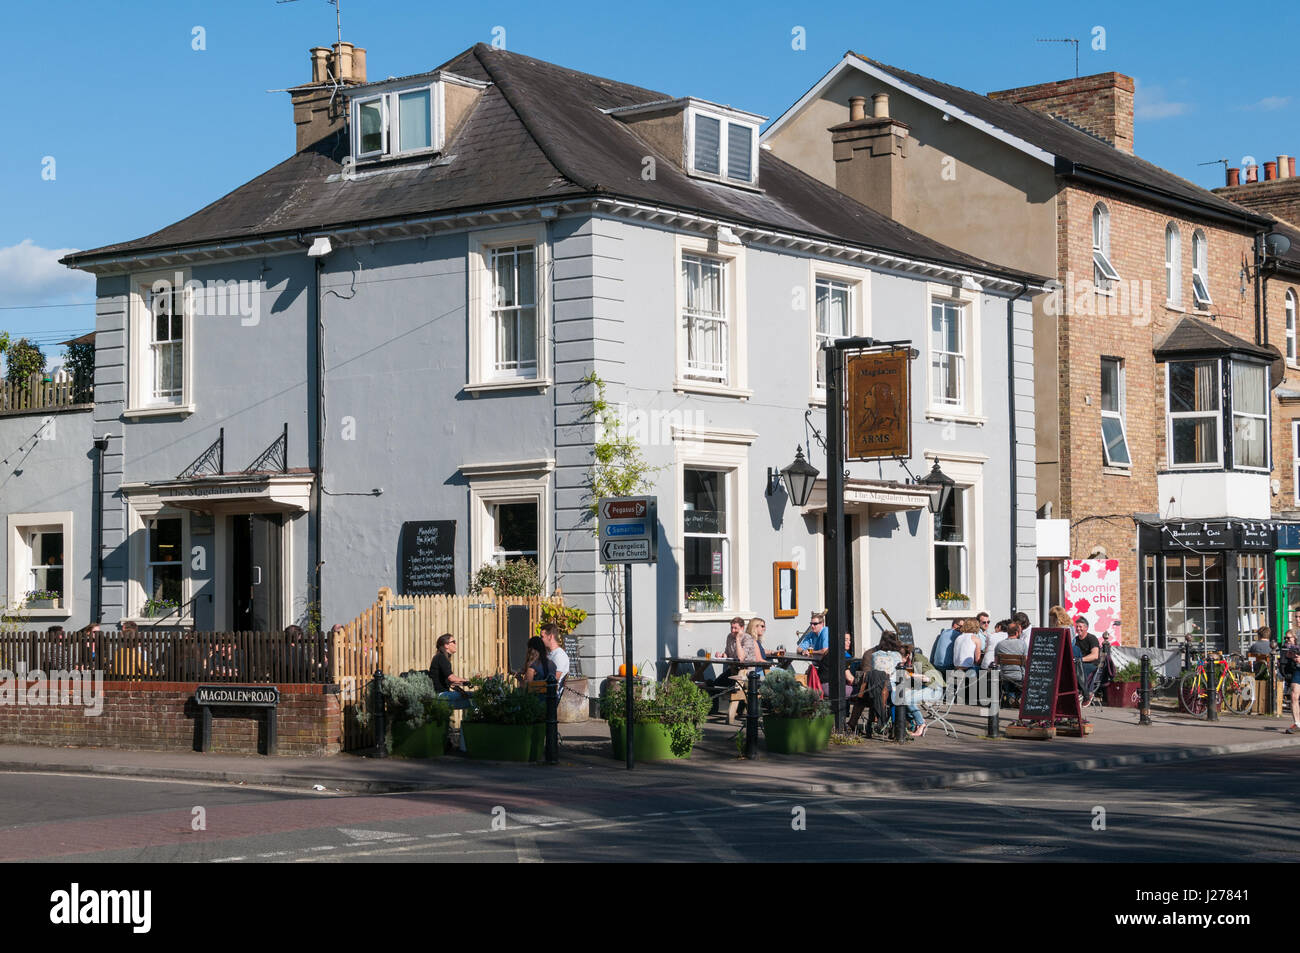 the-magdalen-arms-pub-iffley-road-oxford-united-kingdom-J27841.jpg